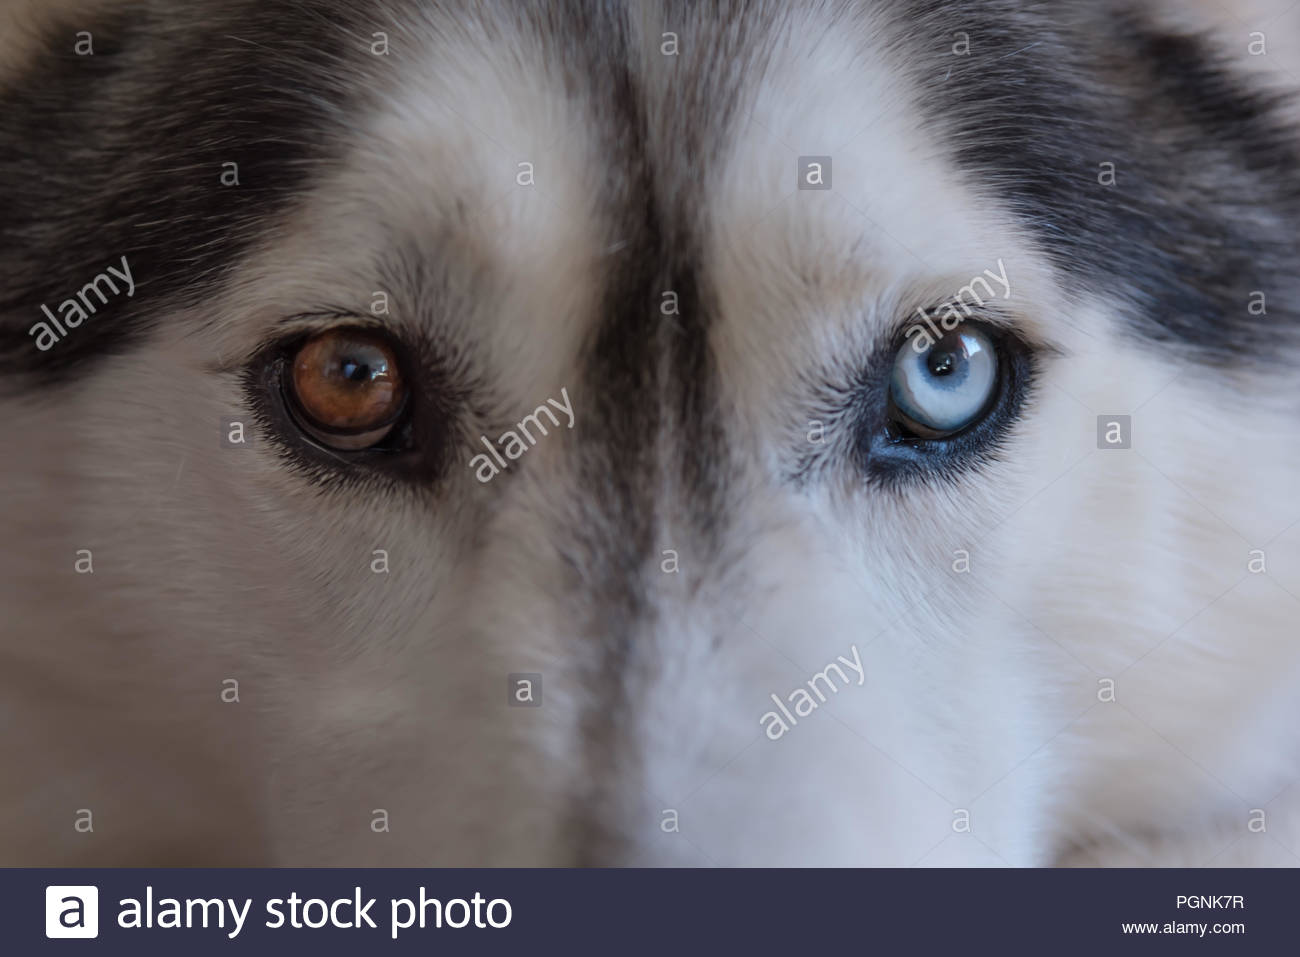 a close up view of the bi coloured or parti-coloured eyes of a grey and white husky wolf dog breed. one eye blue, and the other brown - Stock Image